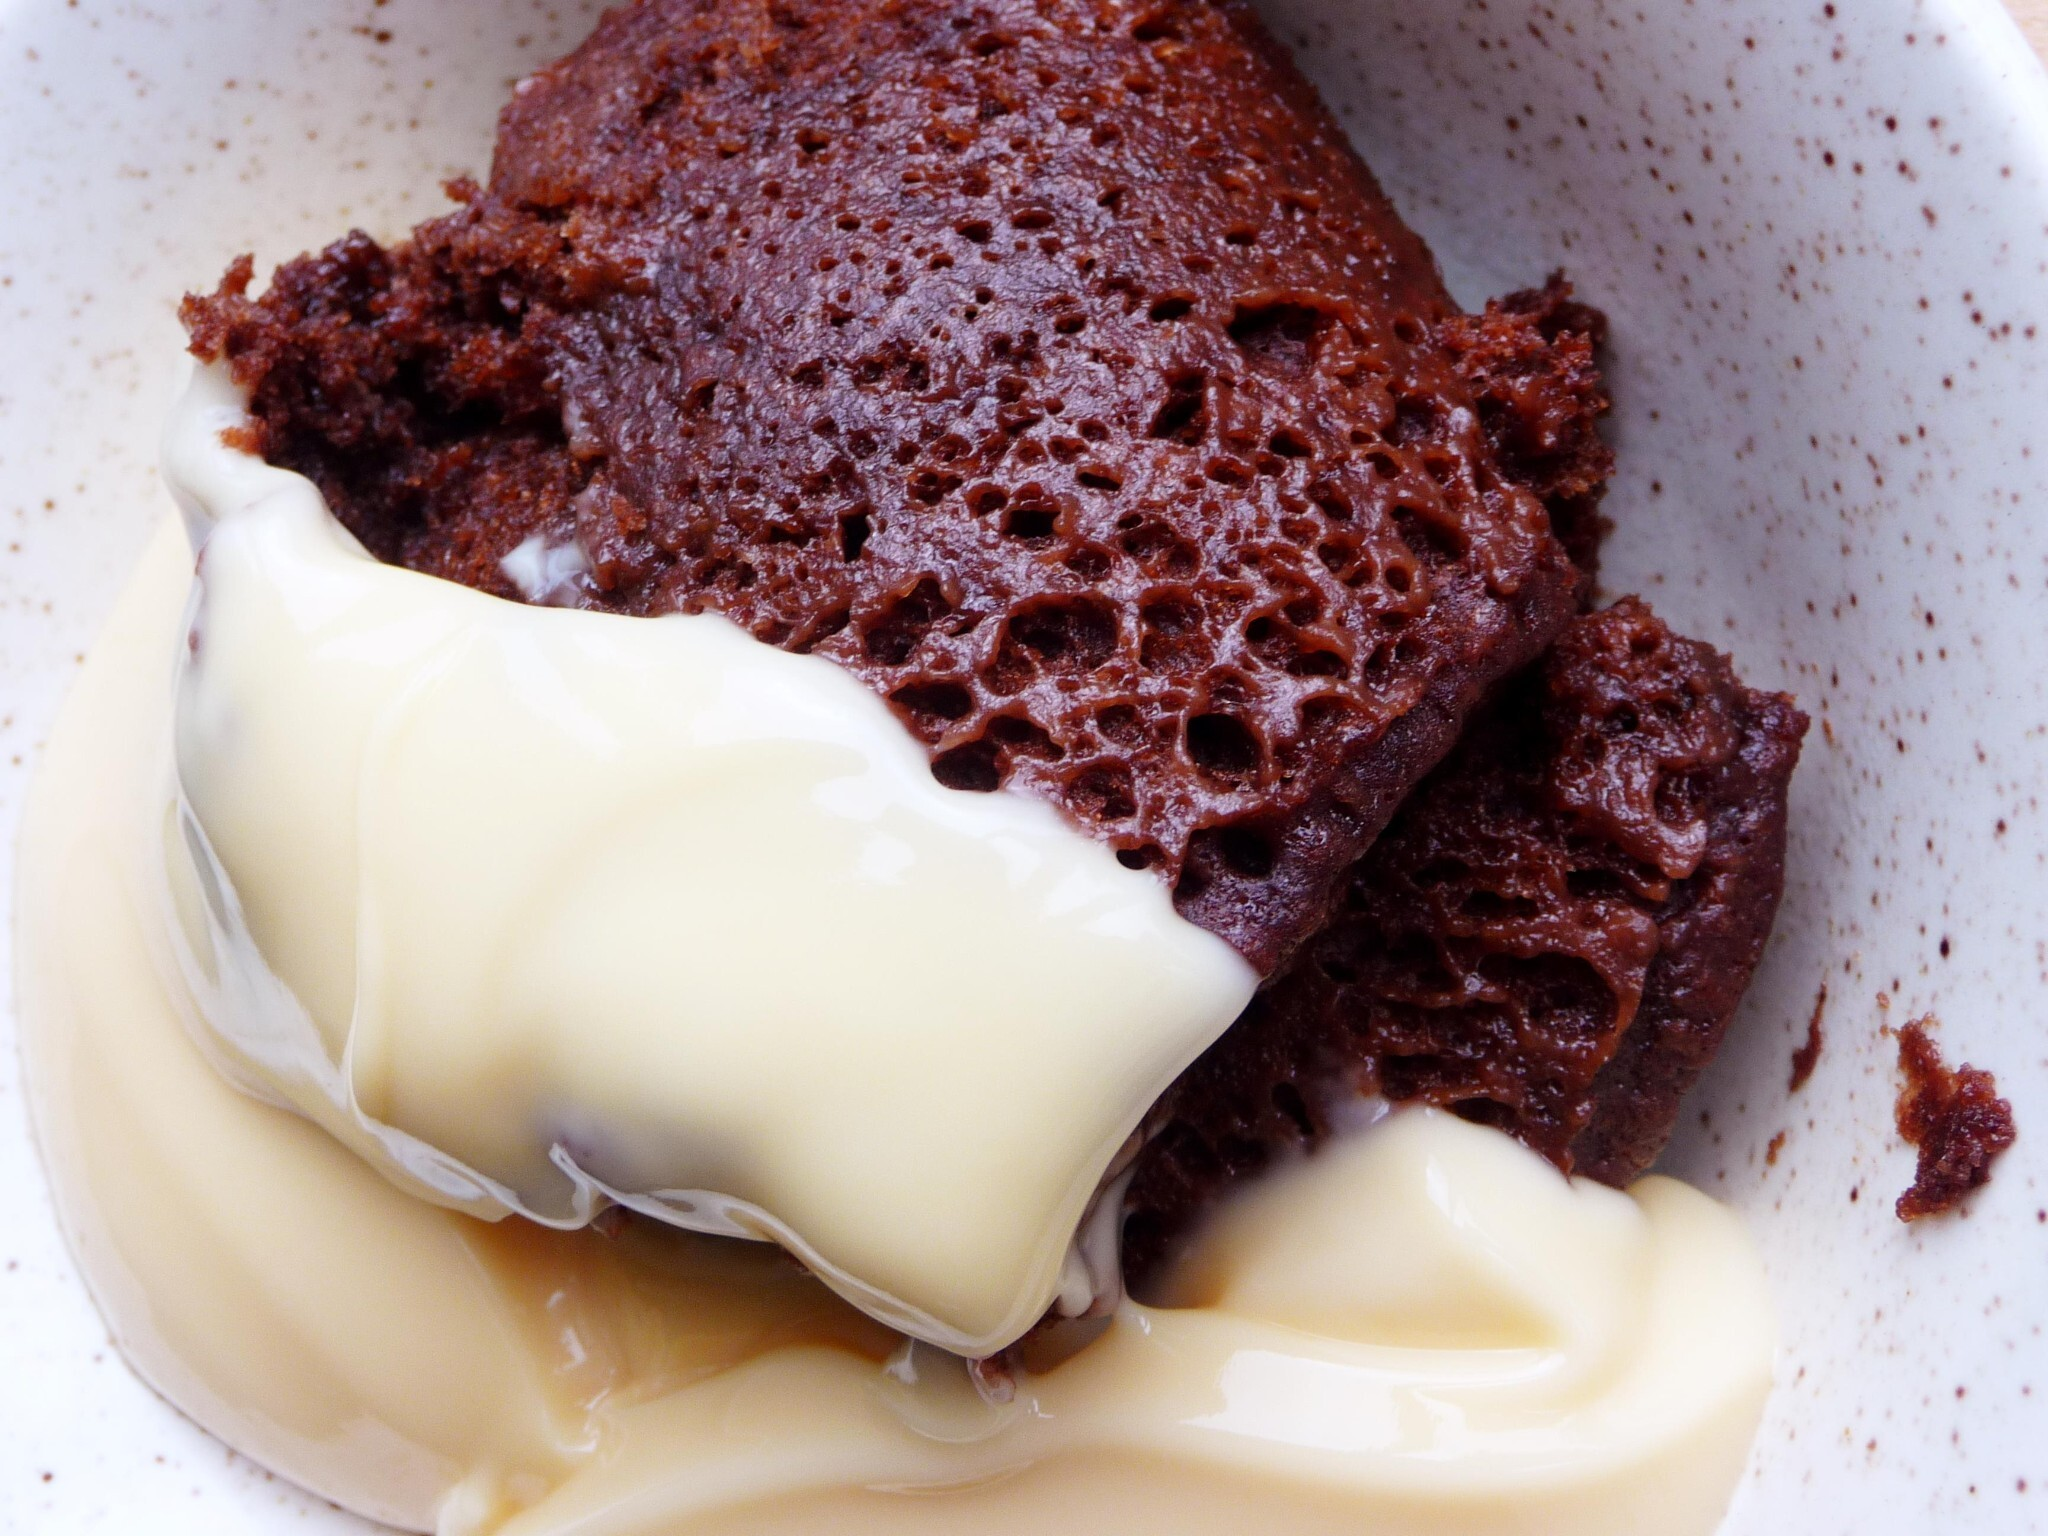 Five minute microwave chocolate pudding